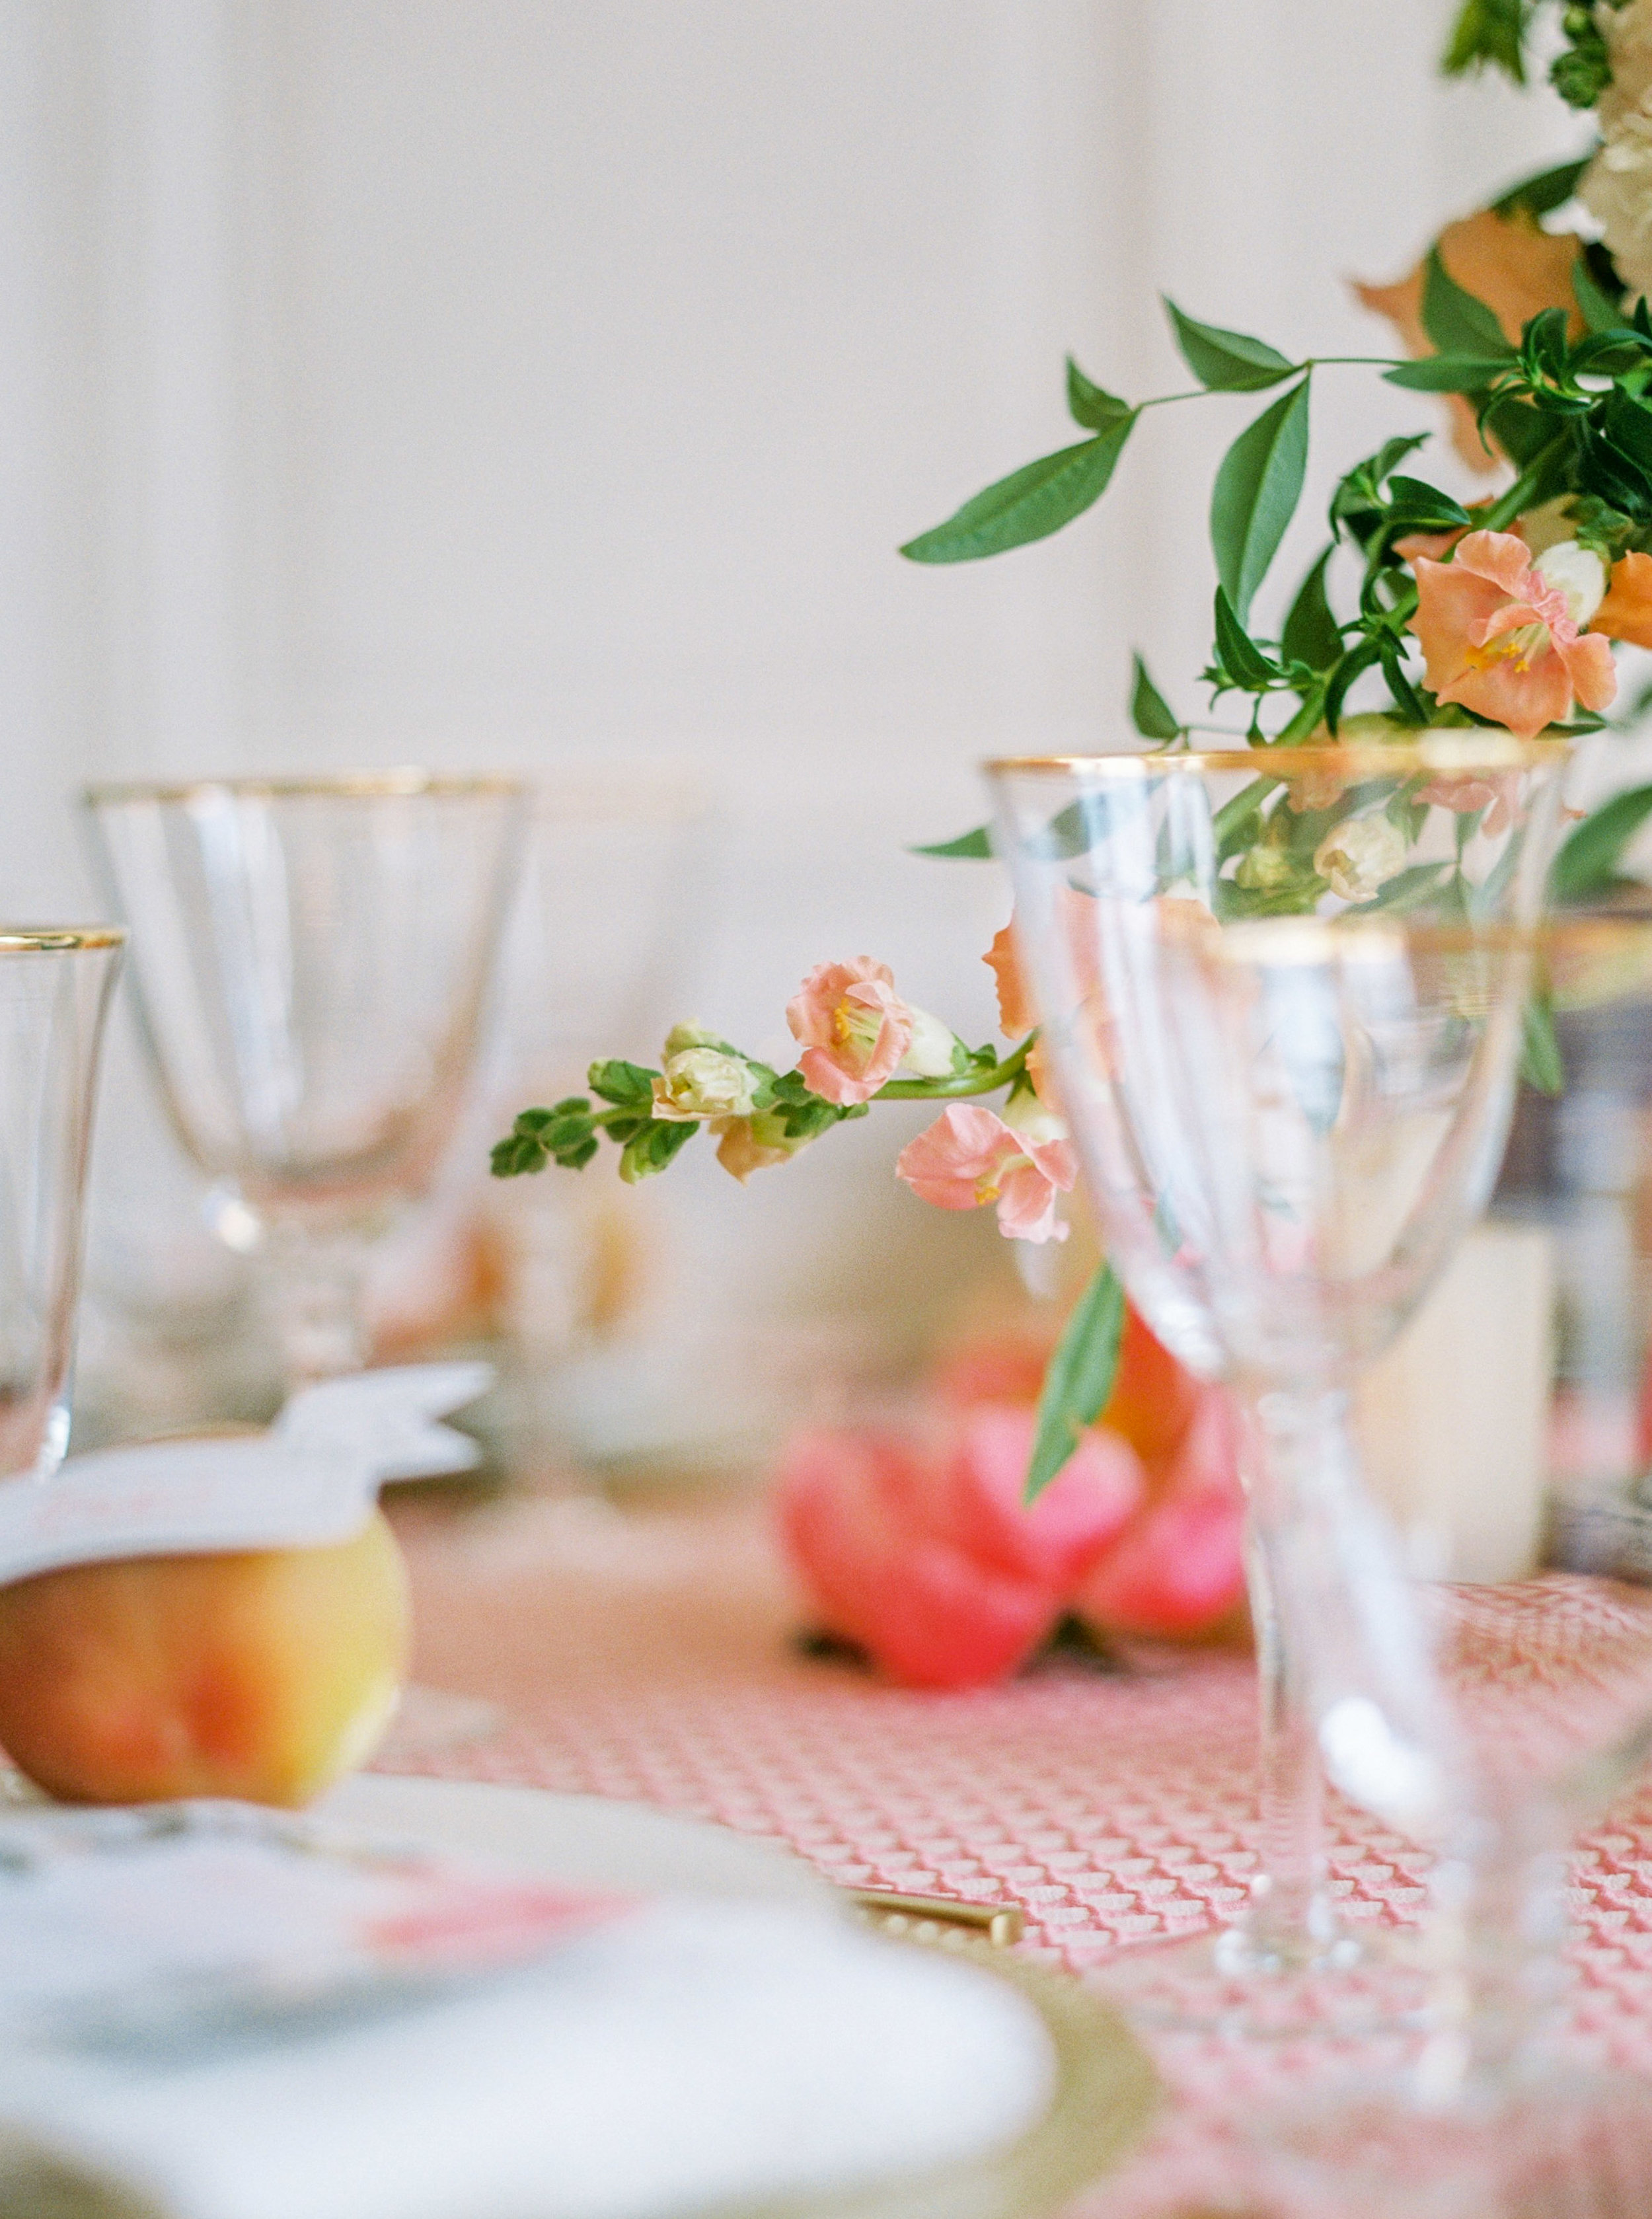 Nine Five Photography-Styled Shoots Across America-Wadsworth Mansion (8 of 29).jpg